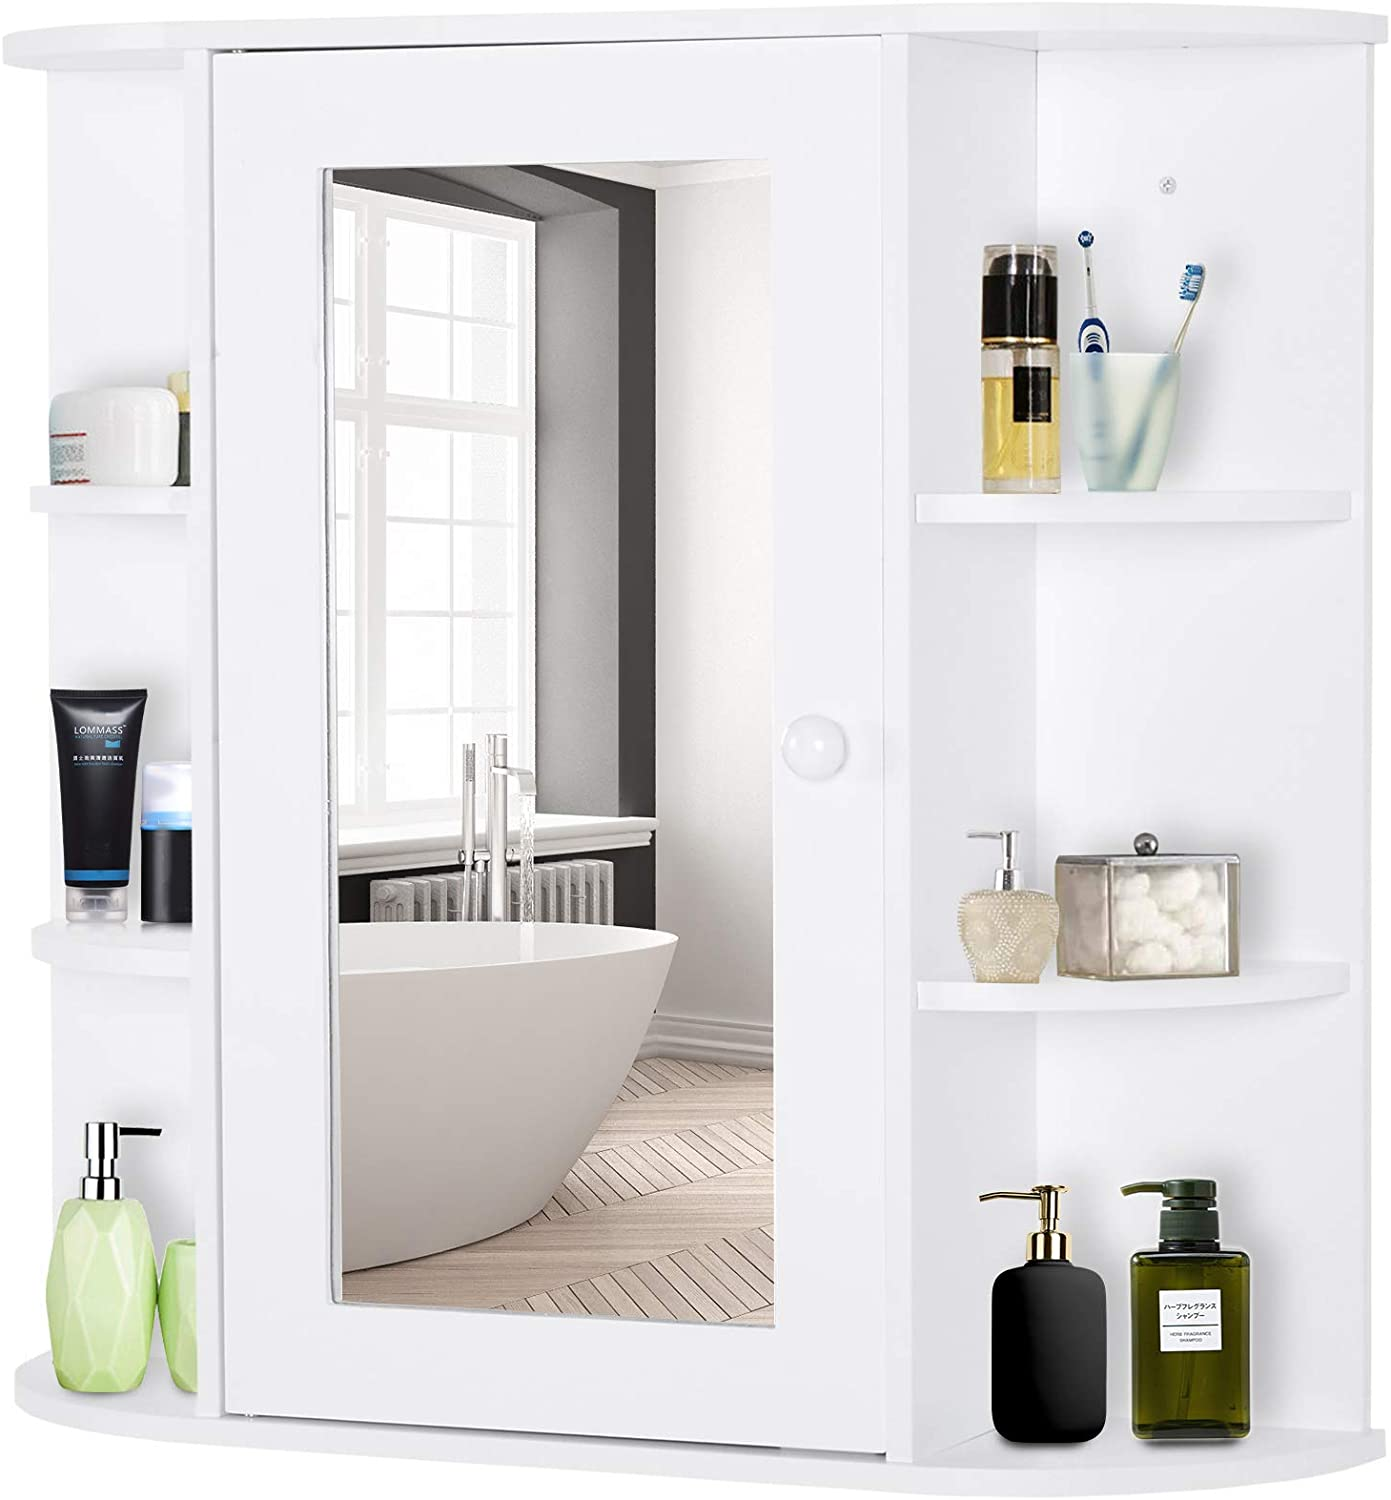 HOMCOM Over-The-Sink Bathroom Storage Organizer Cabinet with Mirrored Door and Multiple Shelves, White